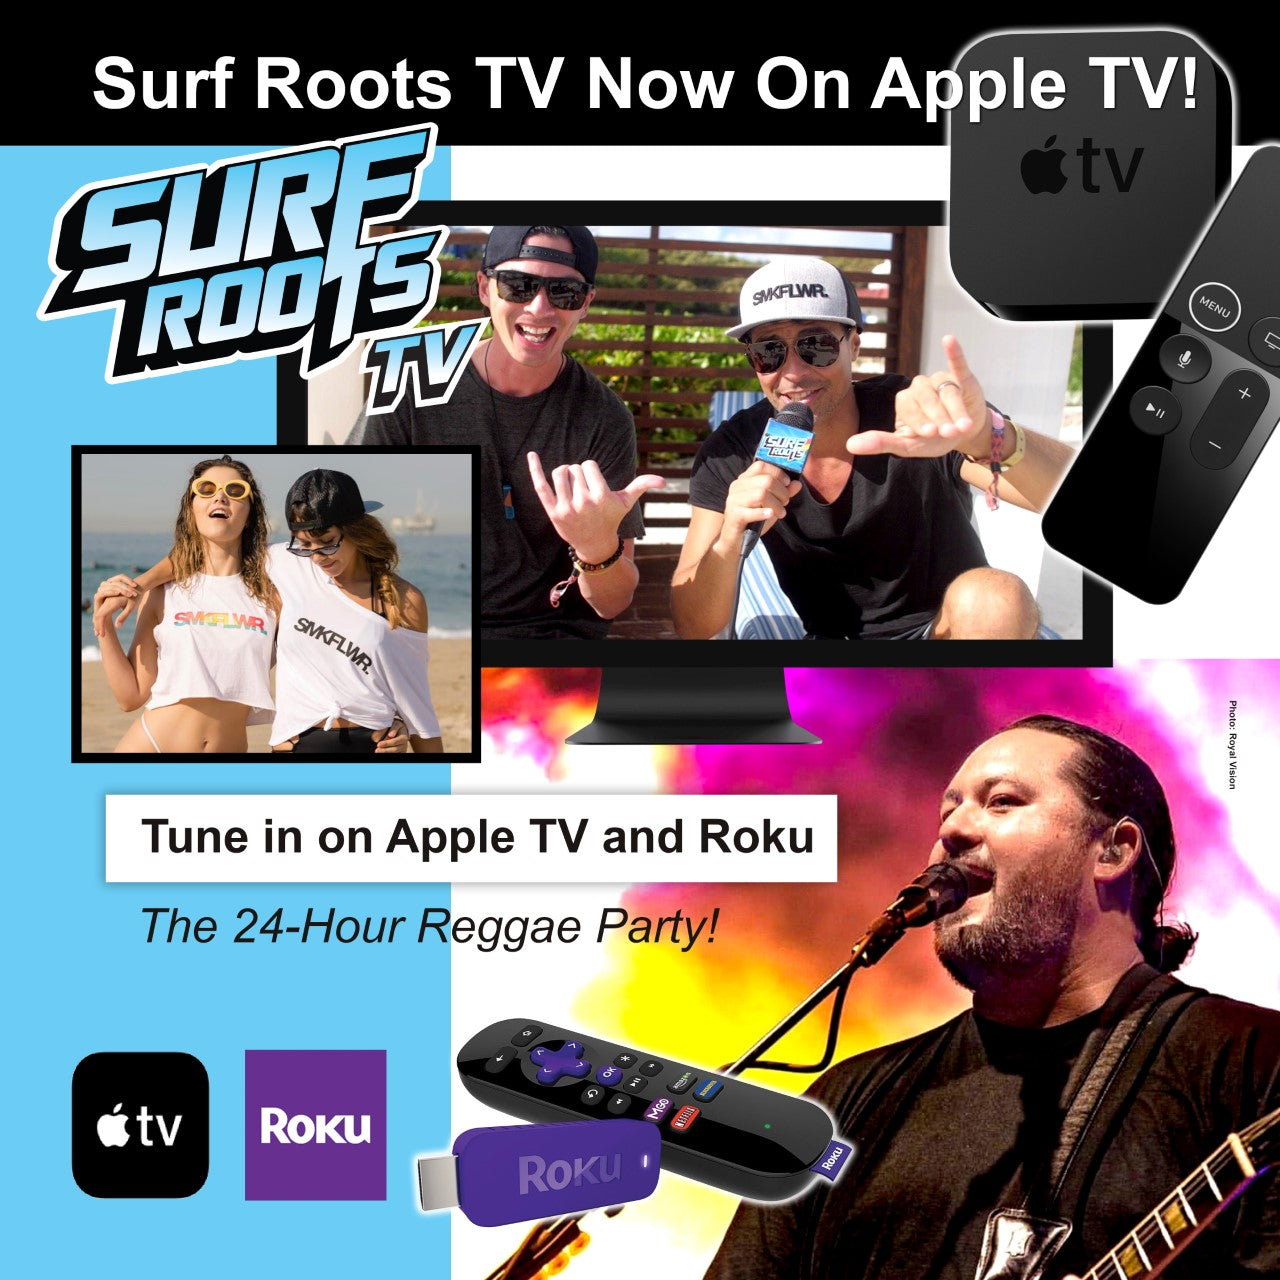 Surf Roots TV expanding to Apple TV on Feb 6th!